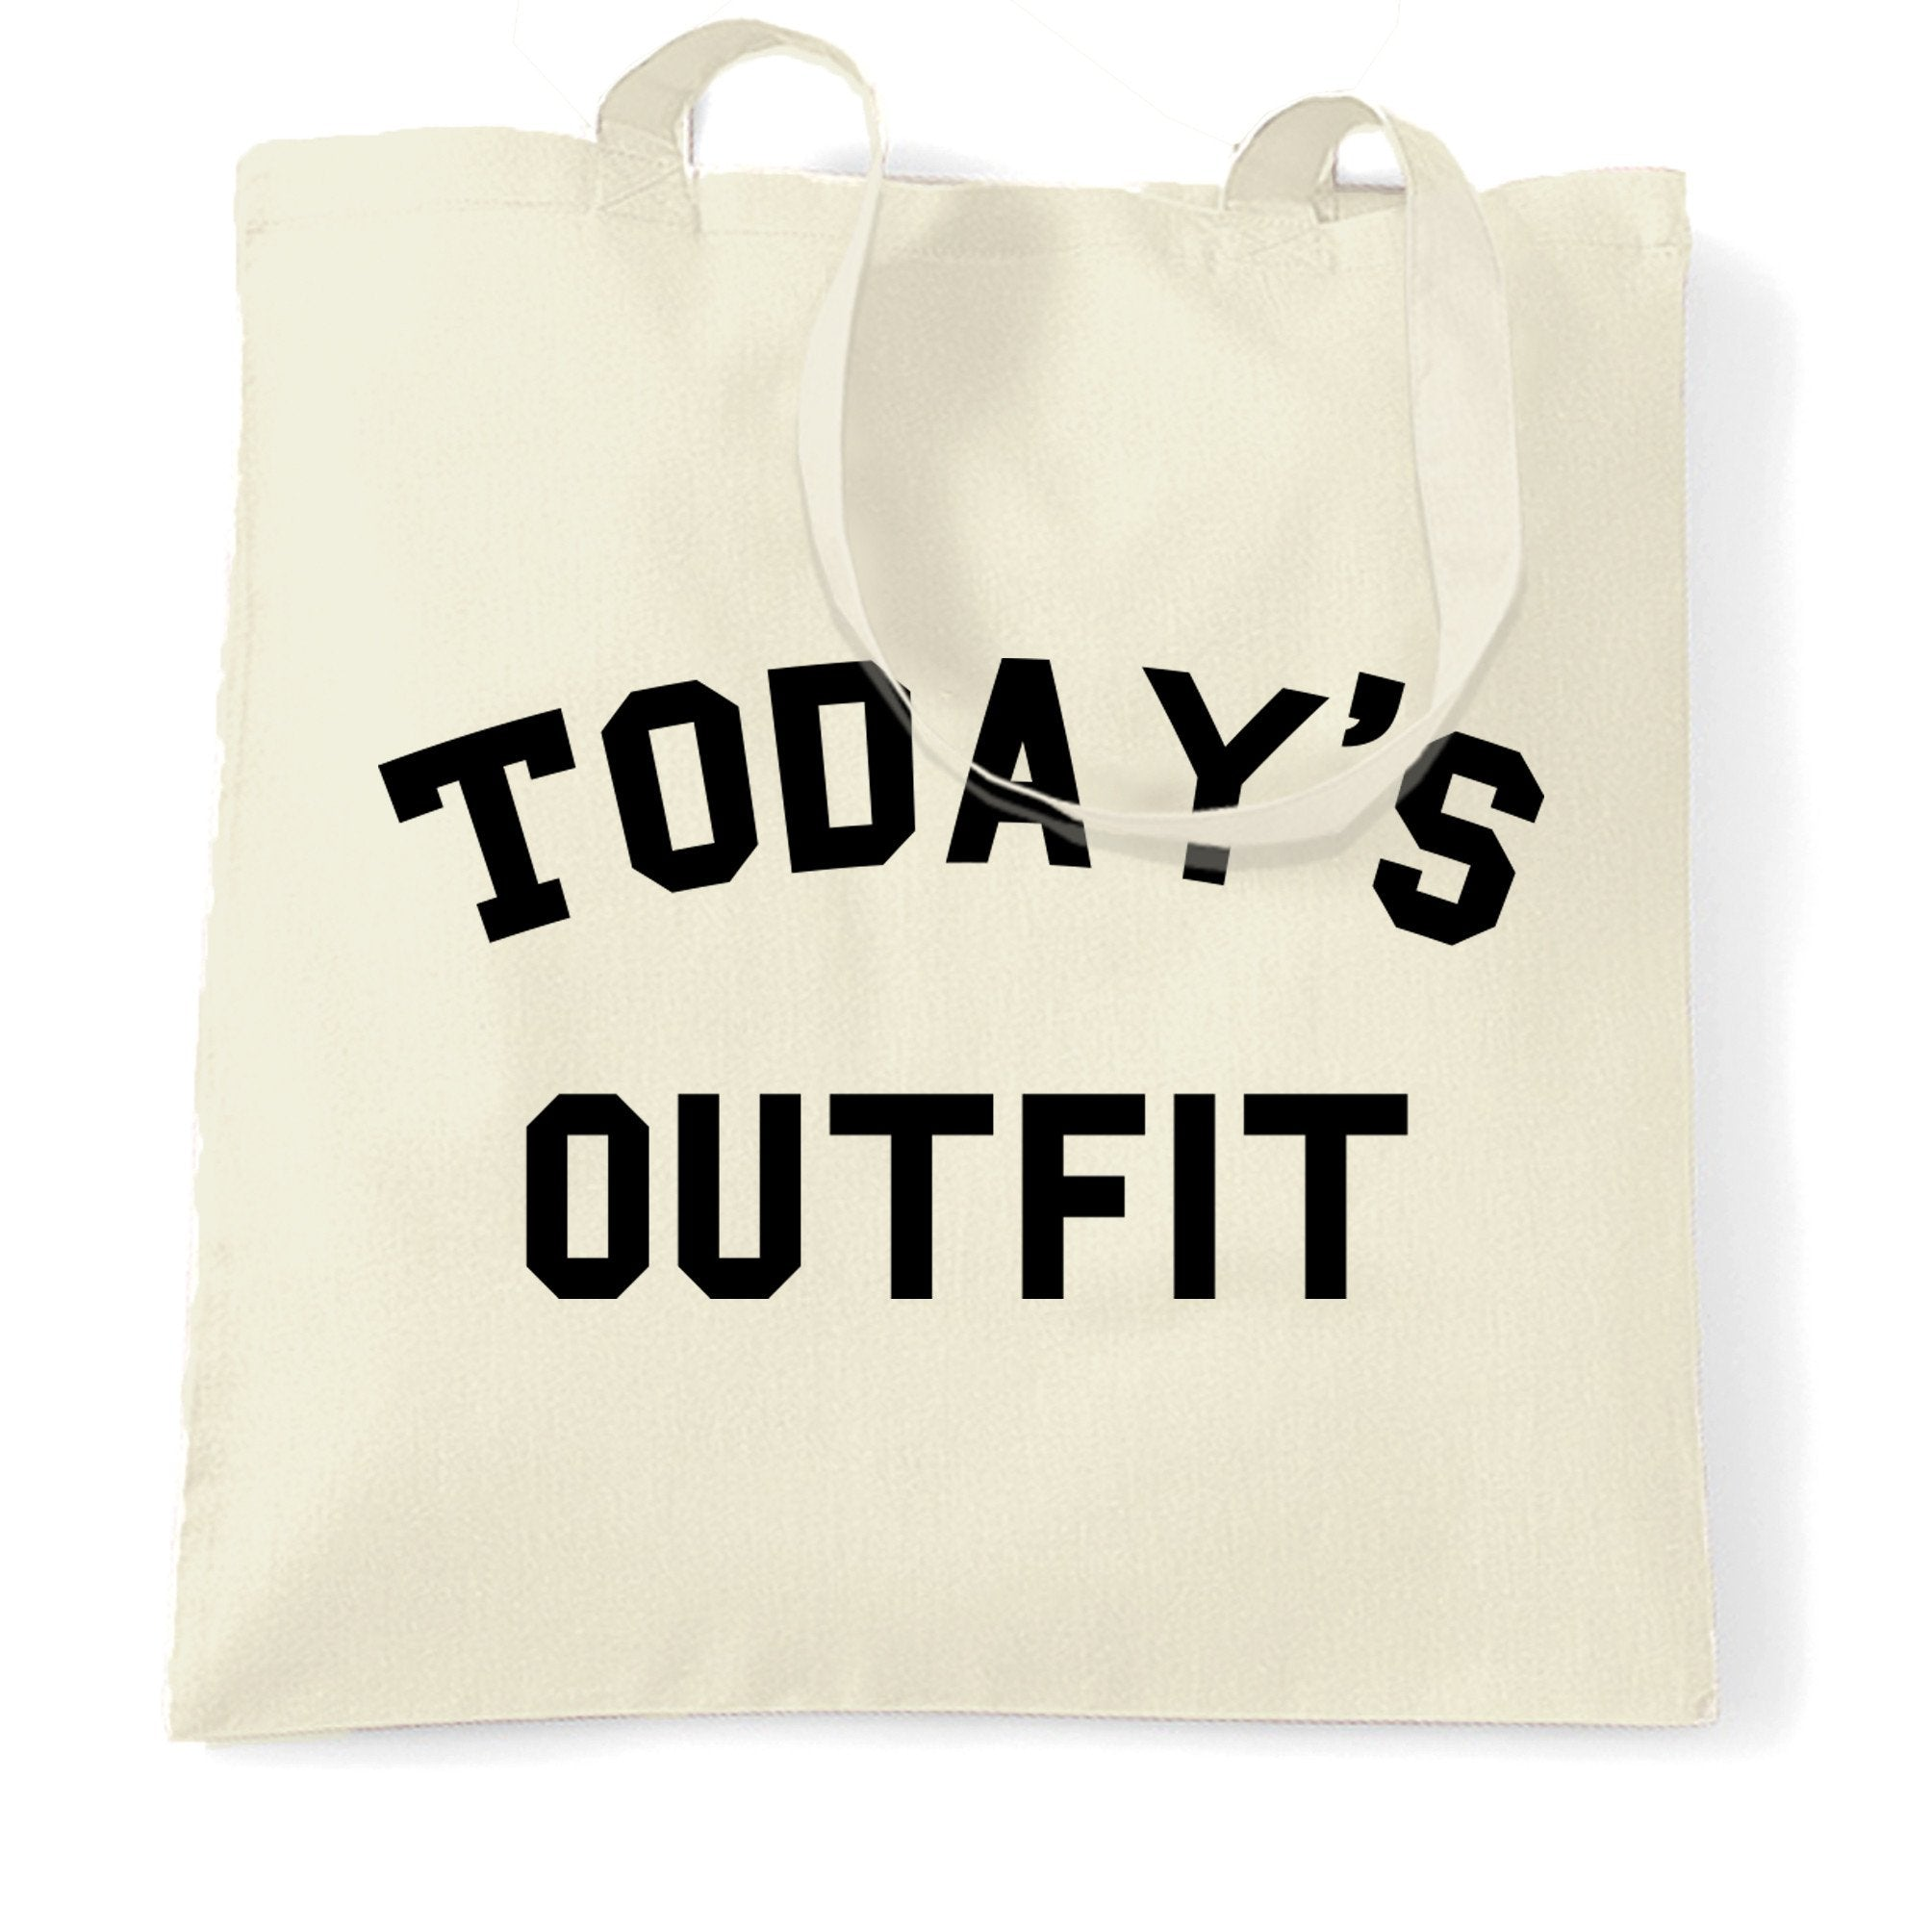 Novelty Slogan Tote Bag This Is Today's Outfit